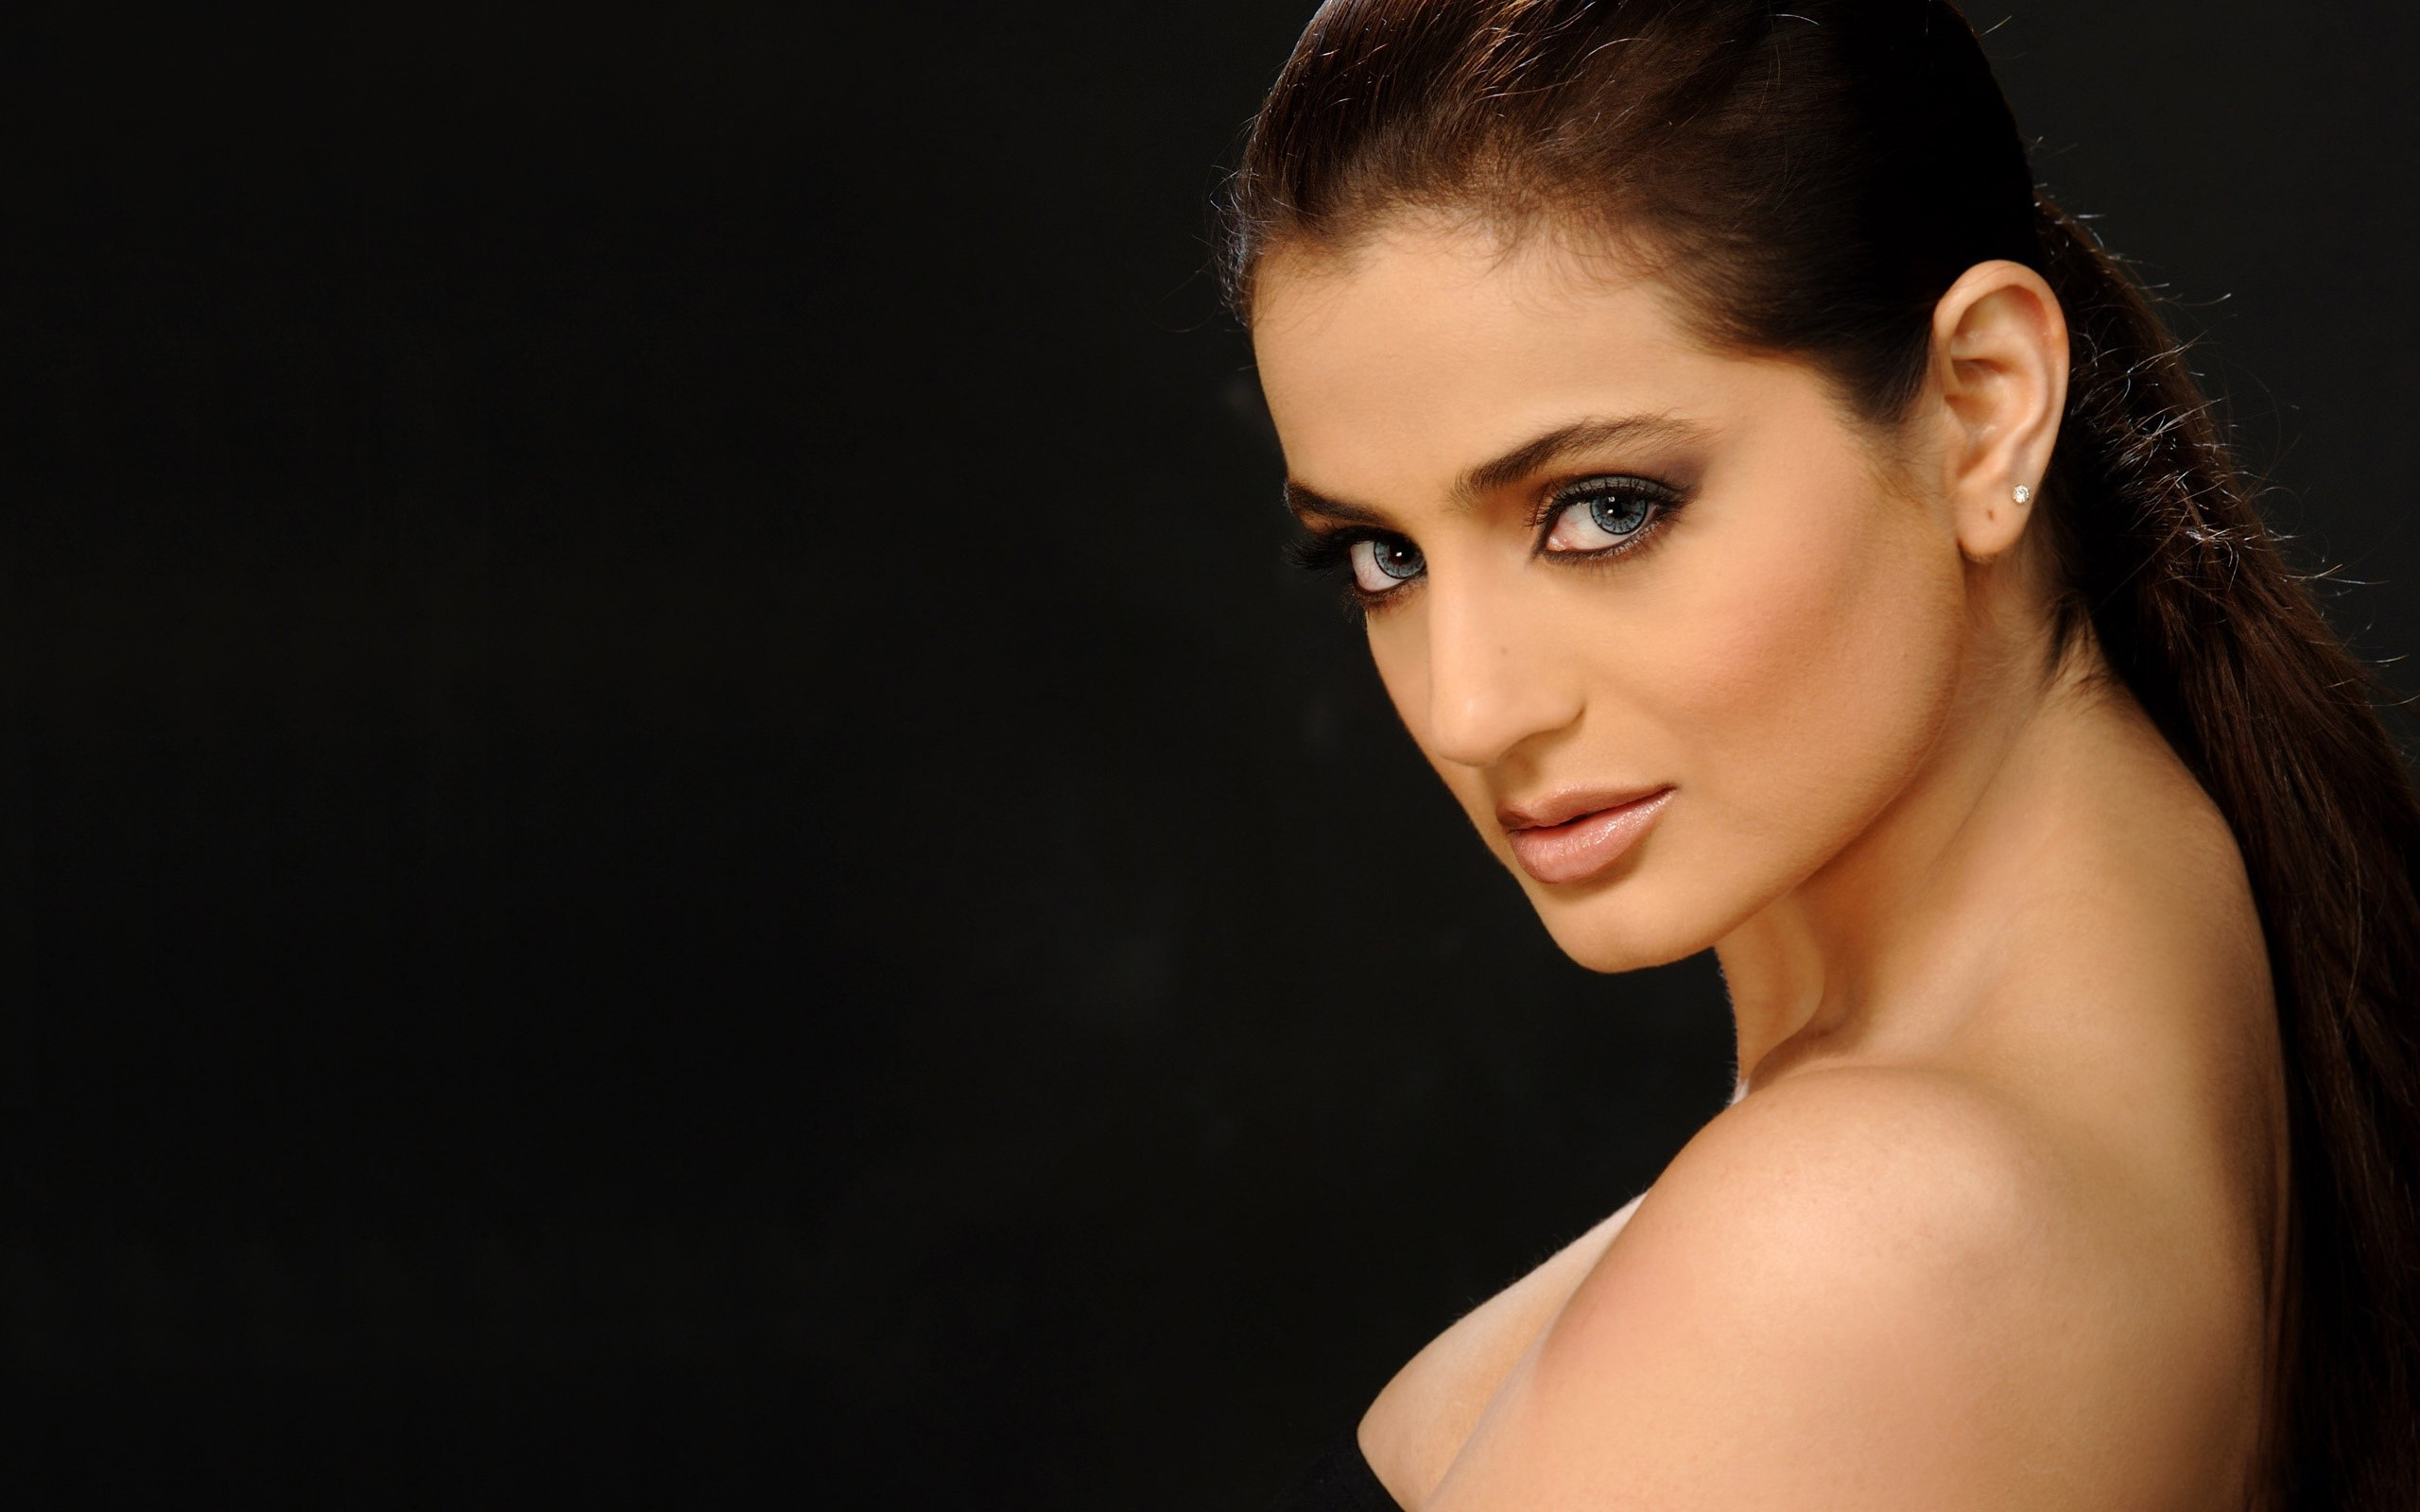 Amisha Patel Full Hd Wallpaper And Background Image -7573